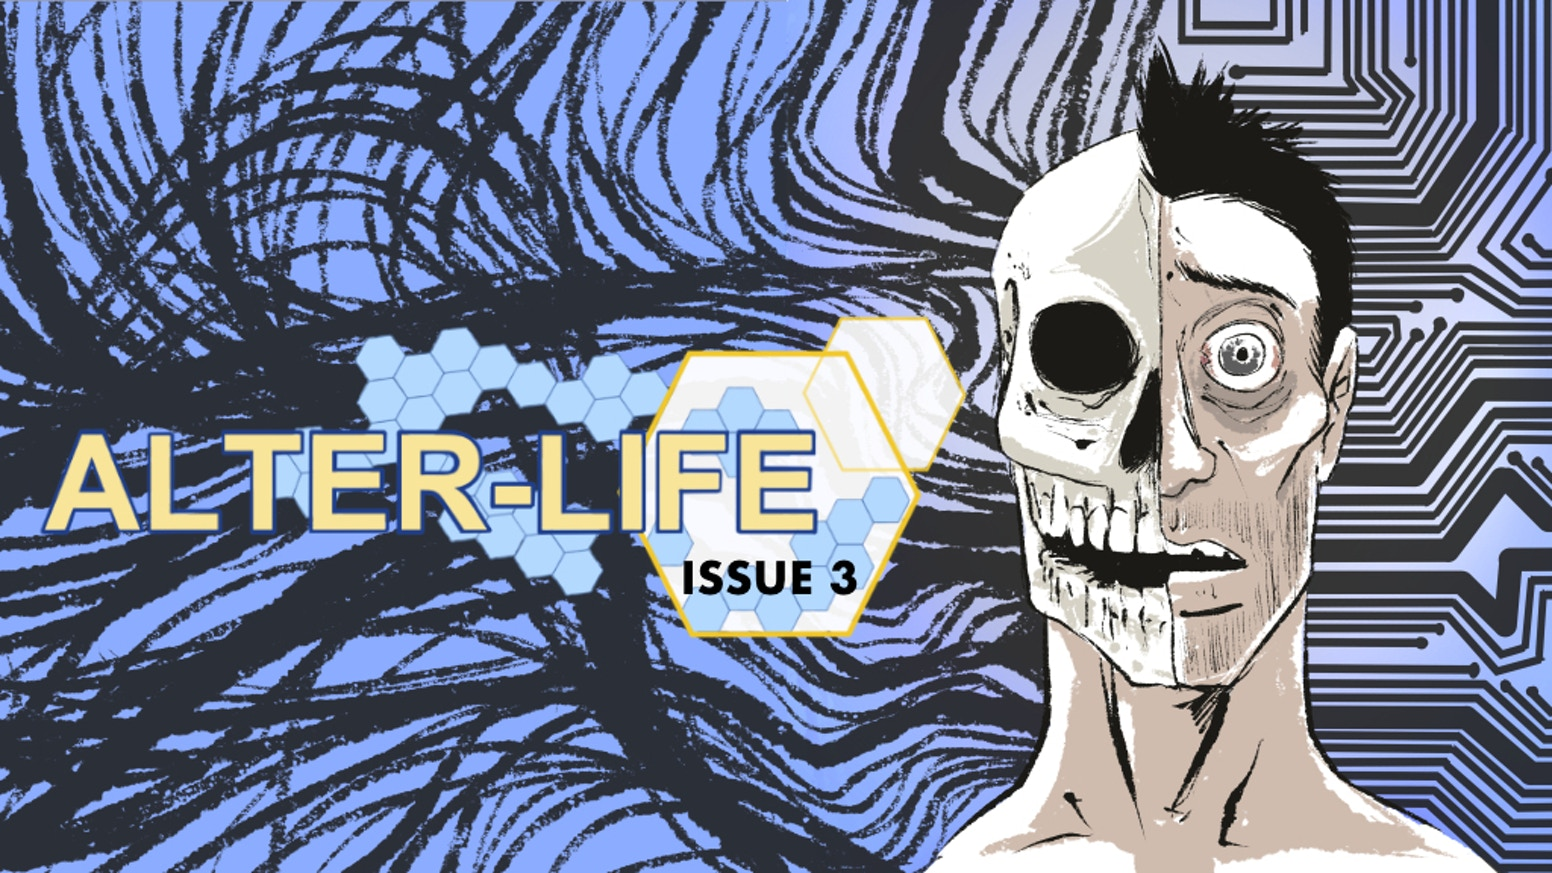 Lost in a world of seemingly infinite existences, Jake's past catches up with him. Join the journey and catch up with all 3 issues!